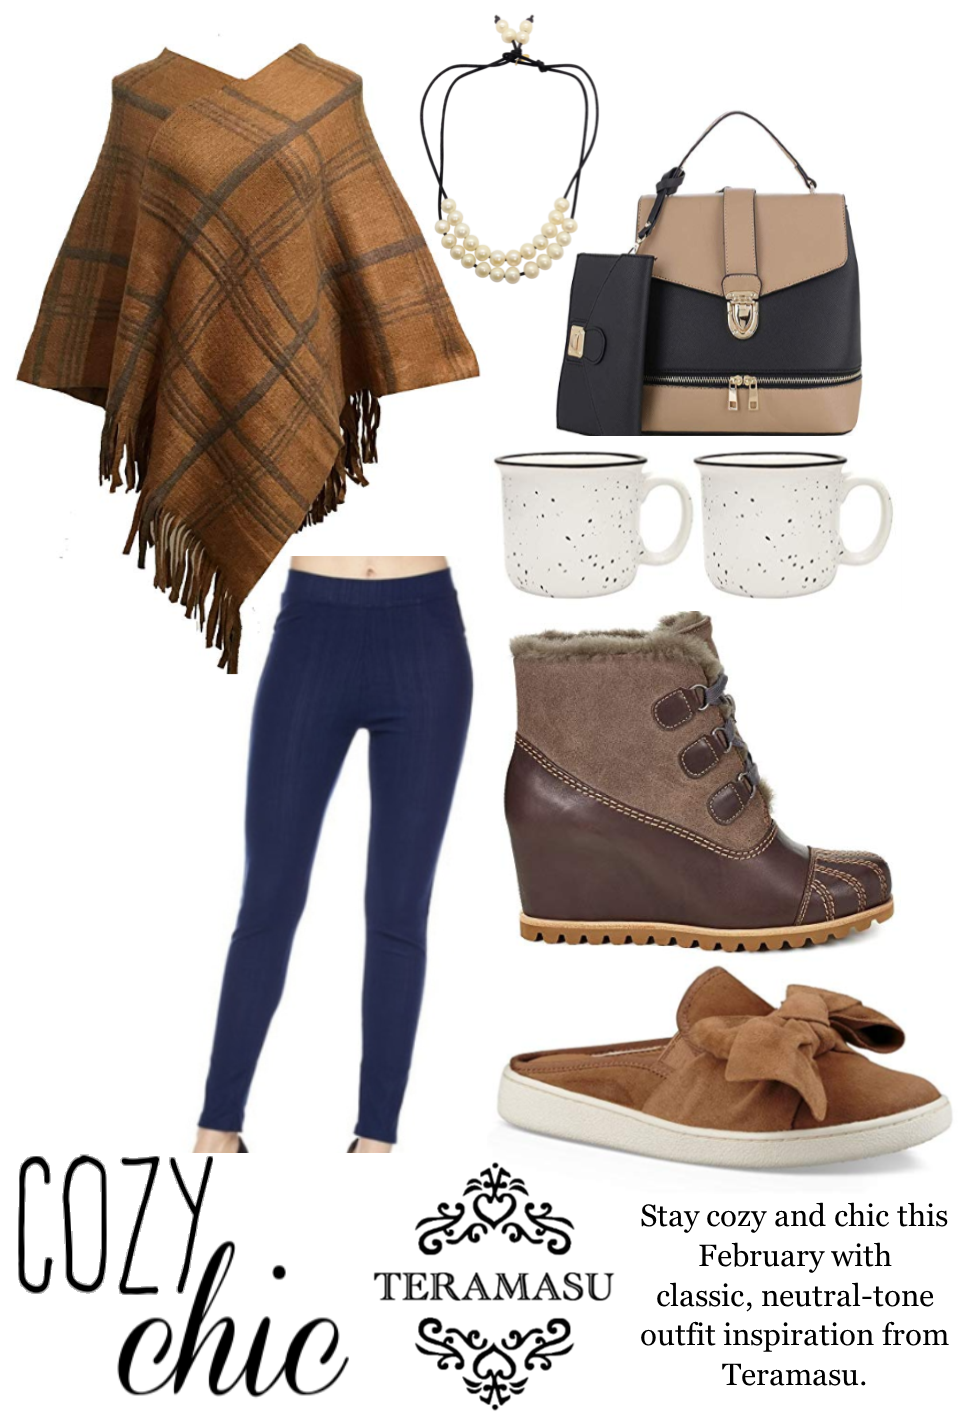 Chic Peek: Cozy & Chic Outfit Inspiration for Your Fabulous February Style from Teramasu